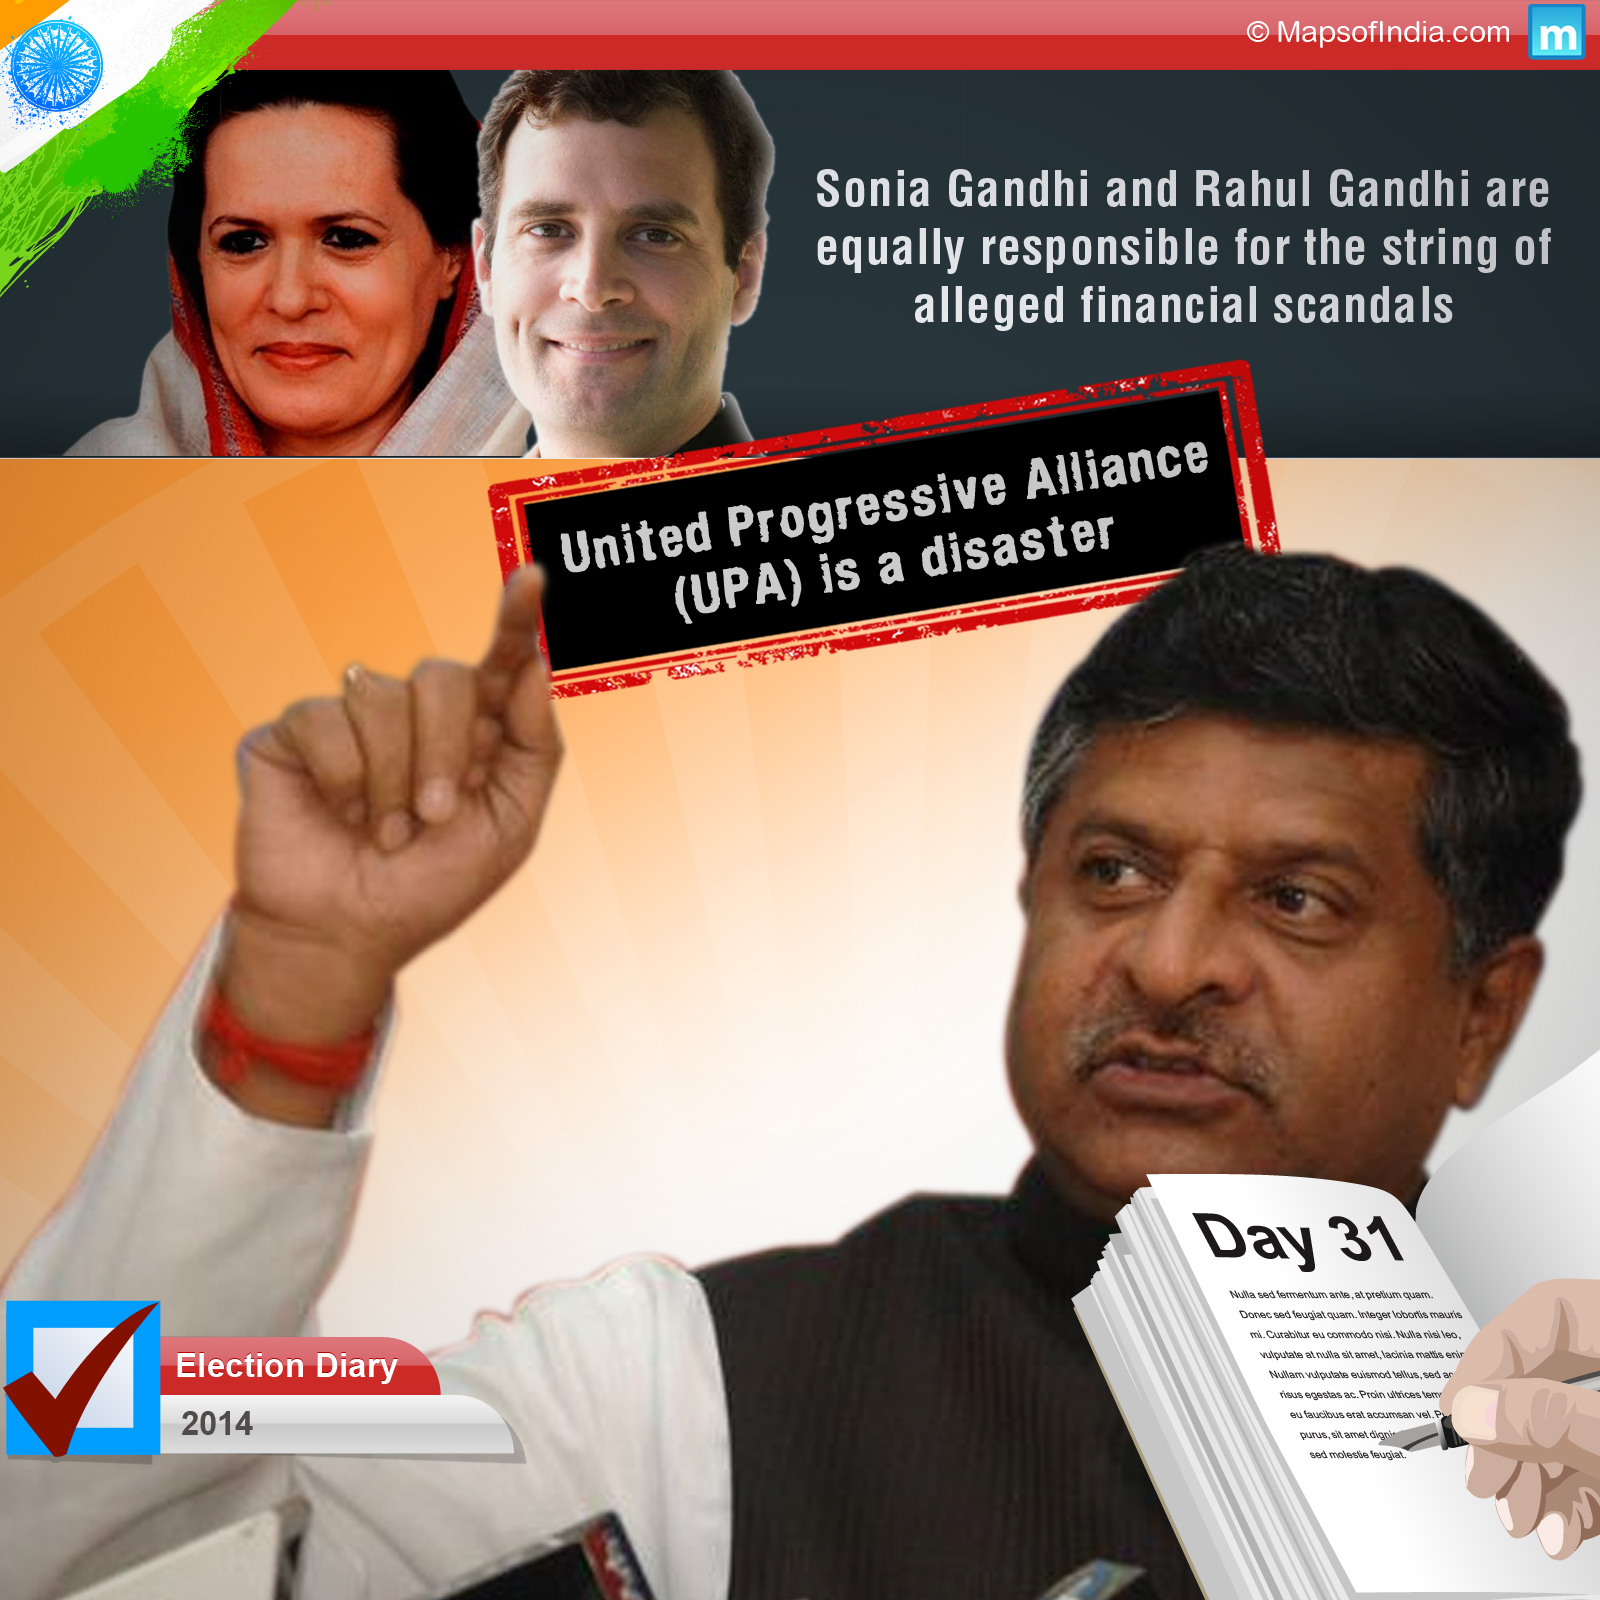 Strong allegations from various political parties against each other